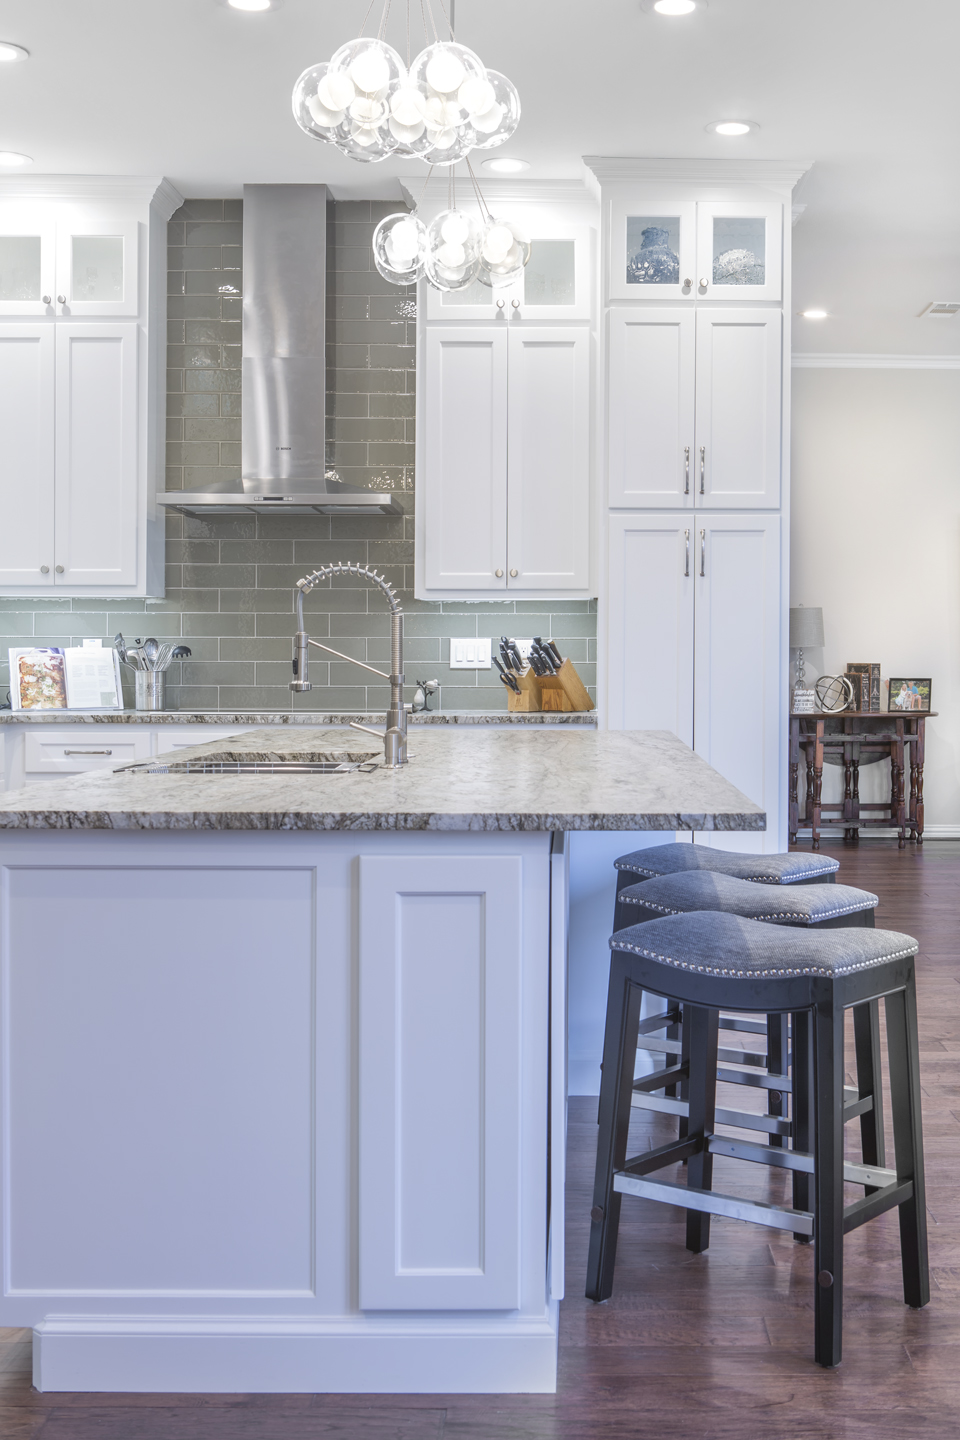 Beautiful kitchen remodel with island seating.